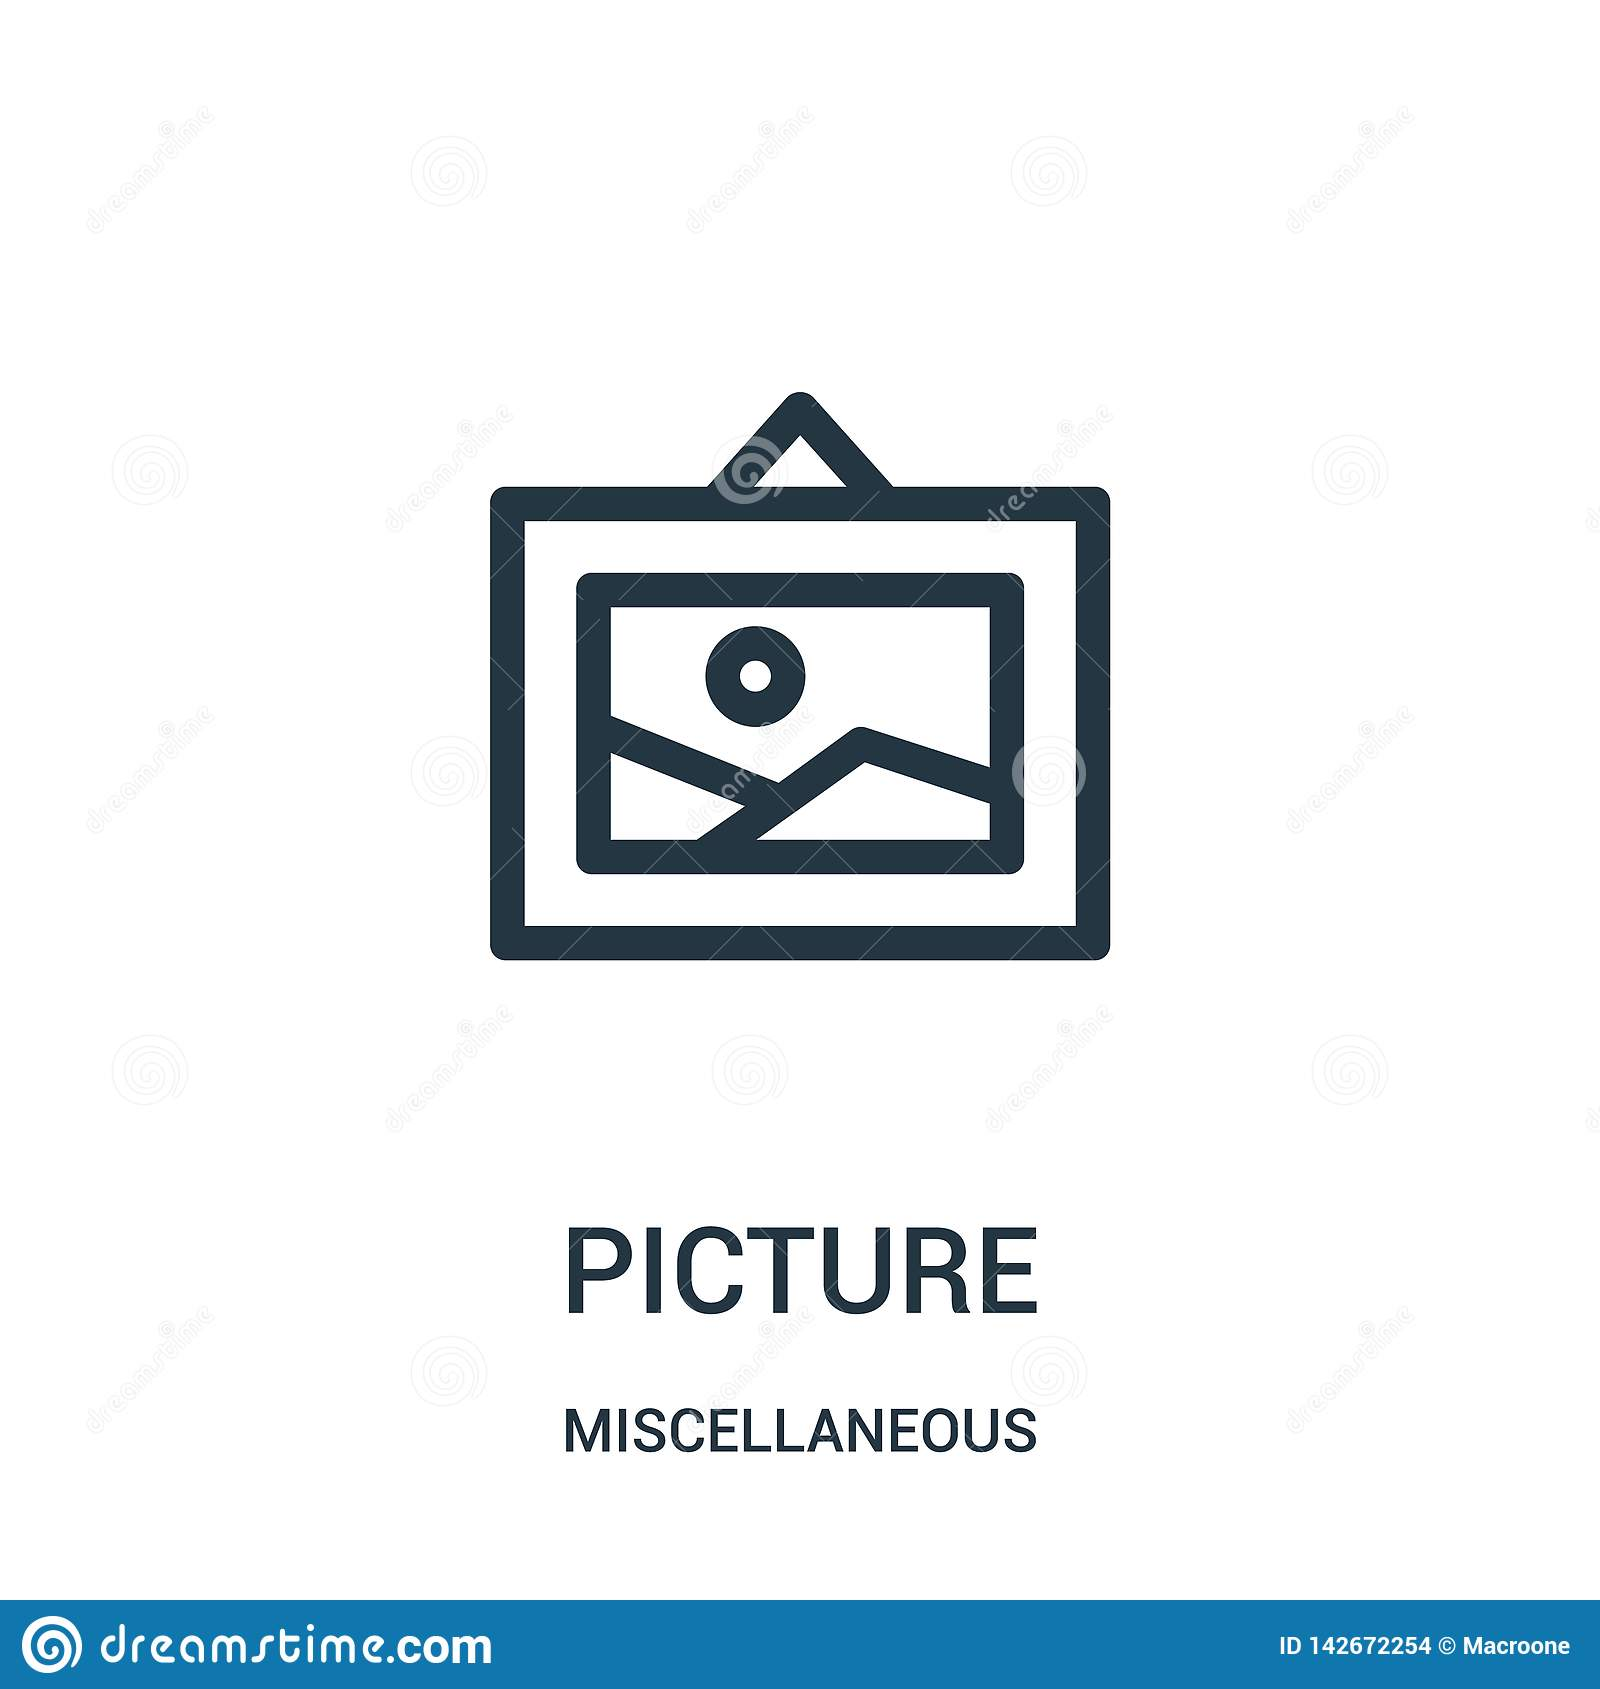 picture icon vector from miscellaneous collection. Thin line picture outline icon vector illustration. Linear symbol for use on